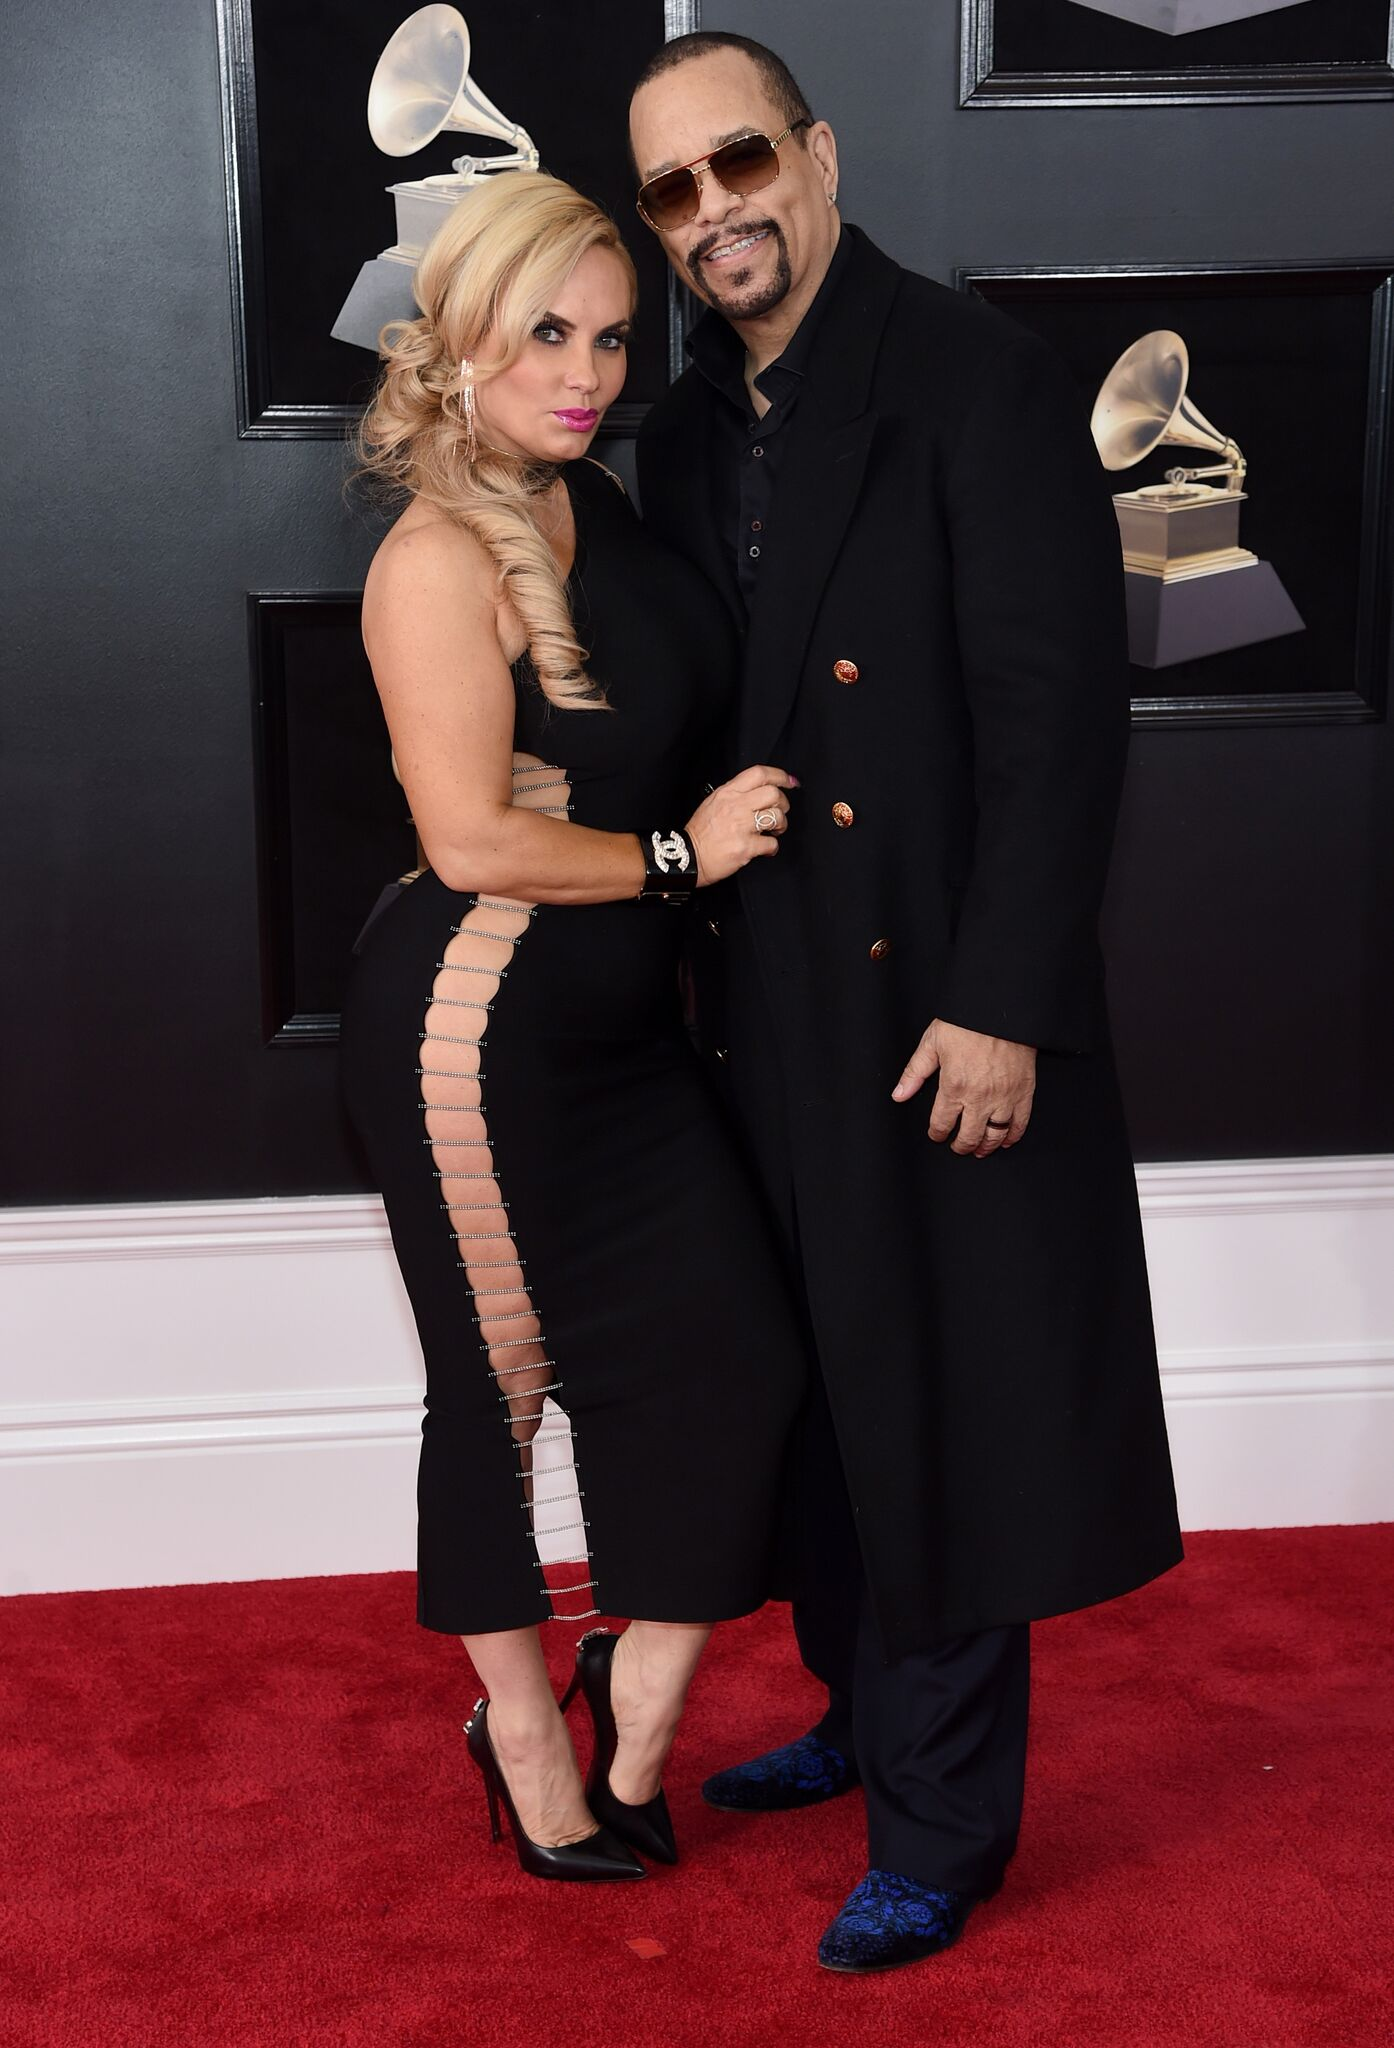 Coco Austin and Ice-T attend the 60th Annual GRAMMY Awards | Getty Images